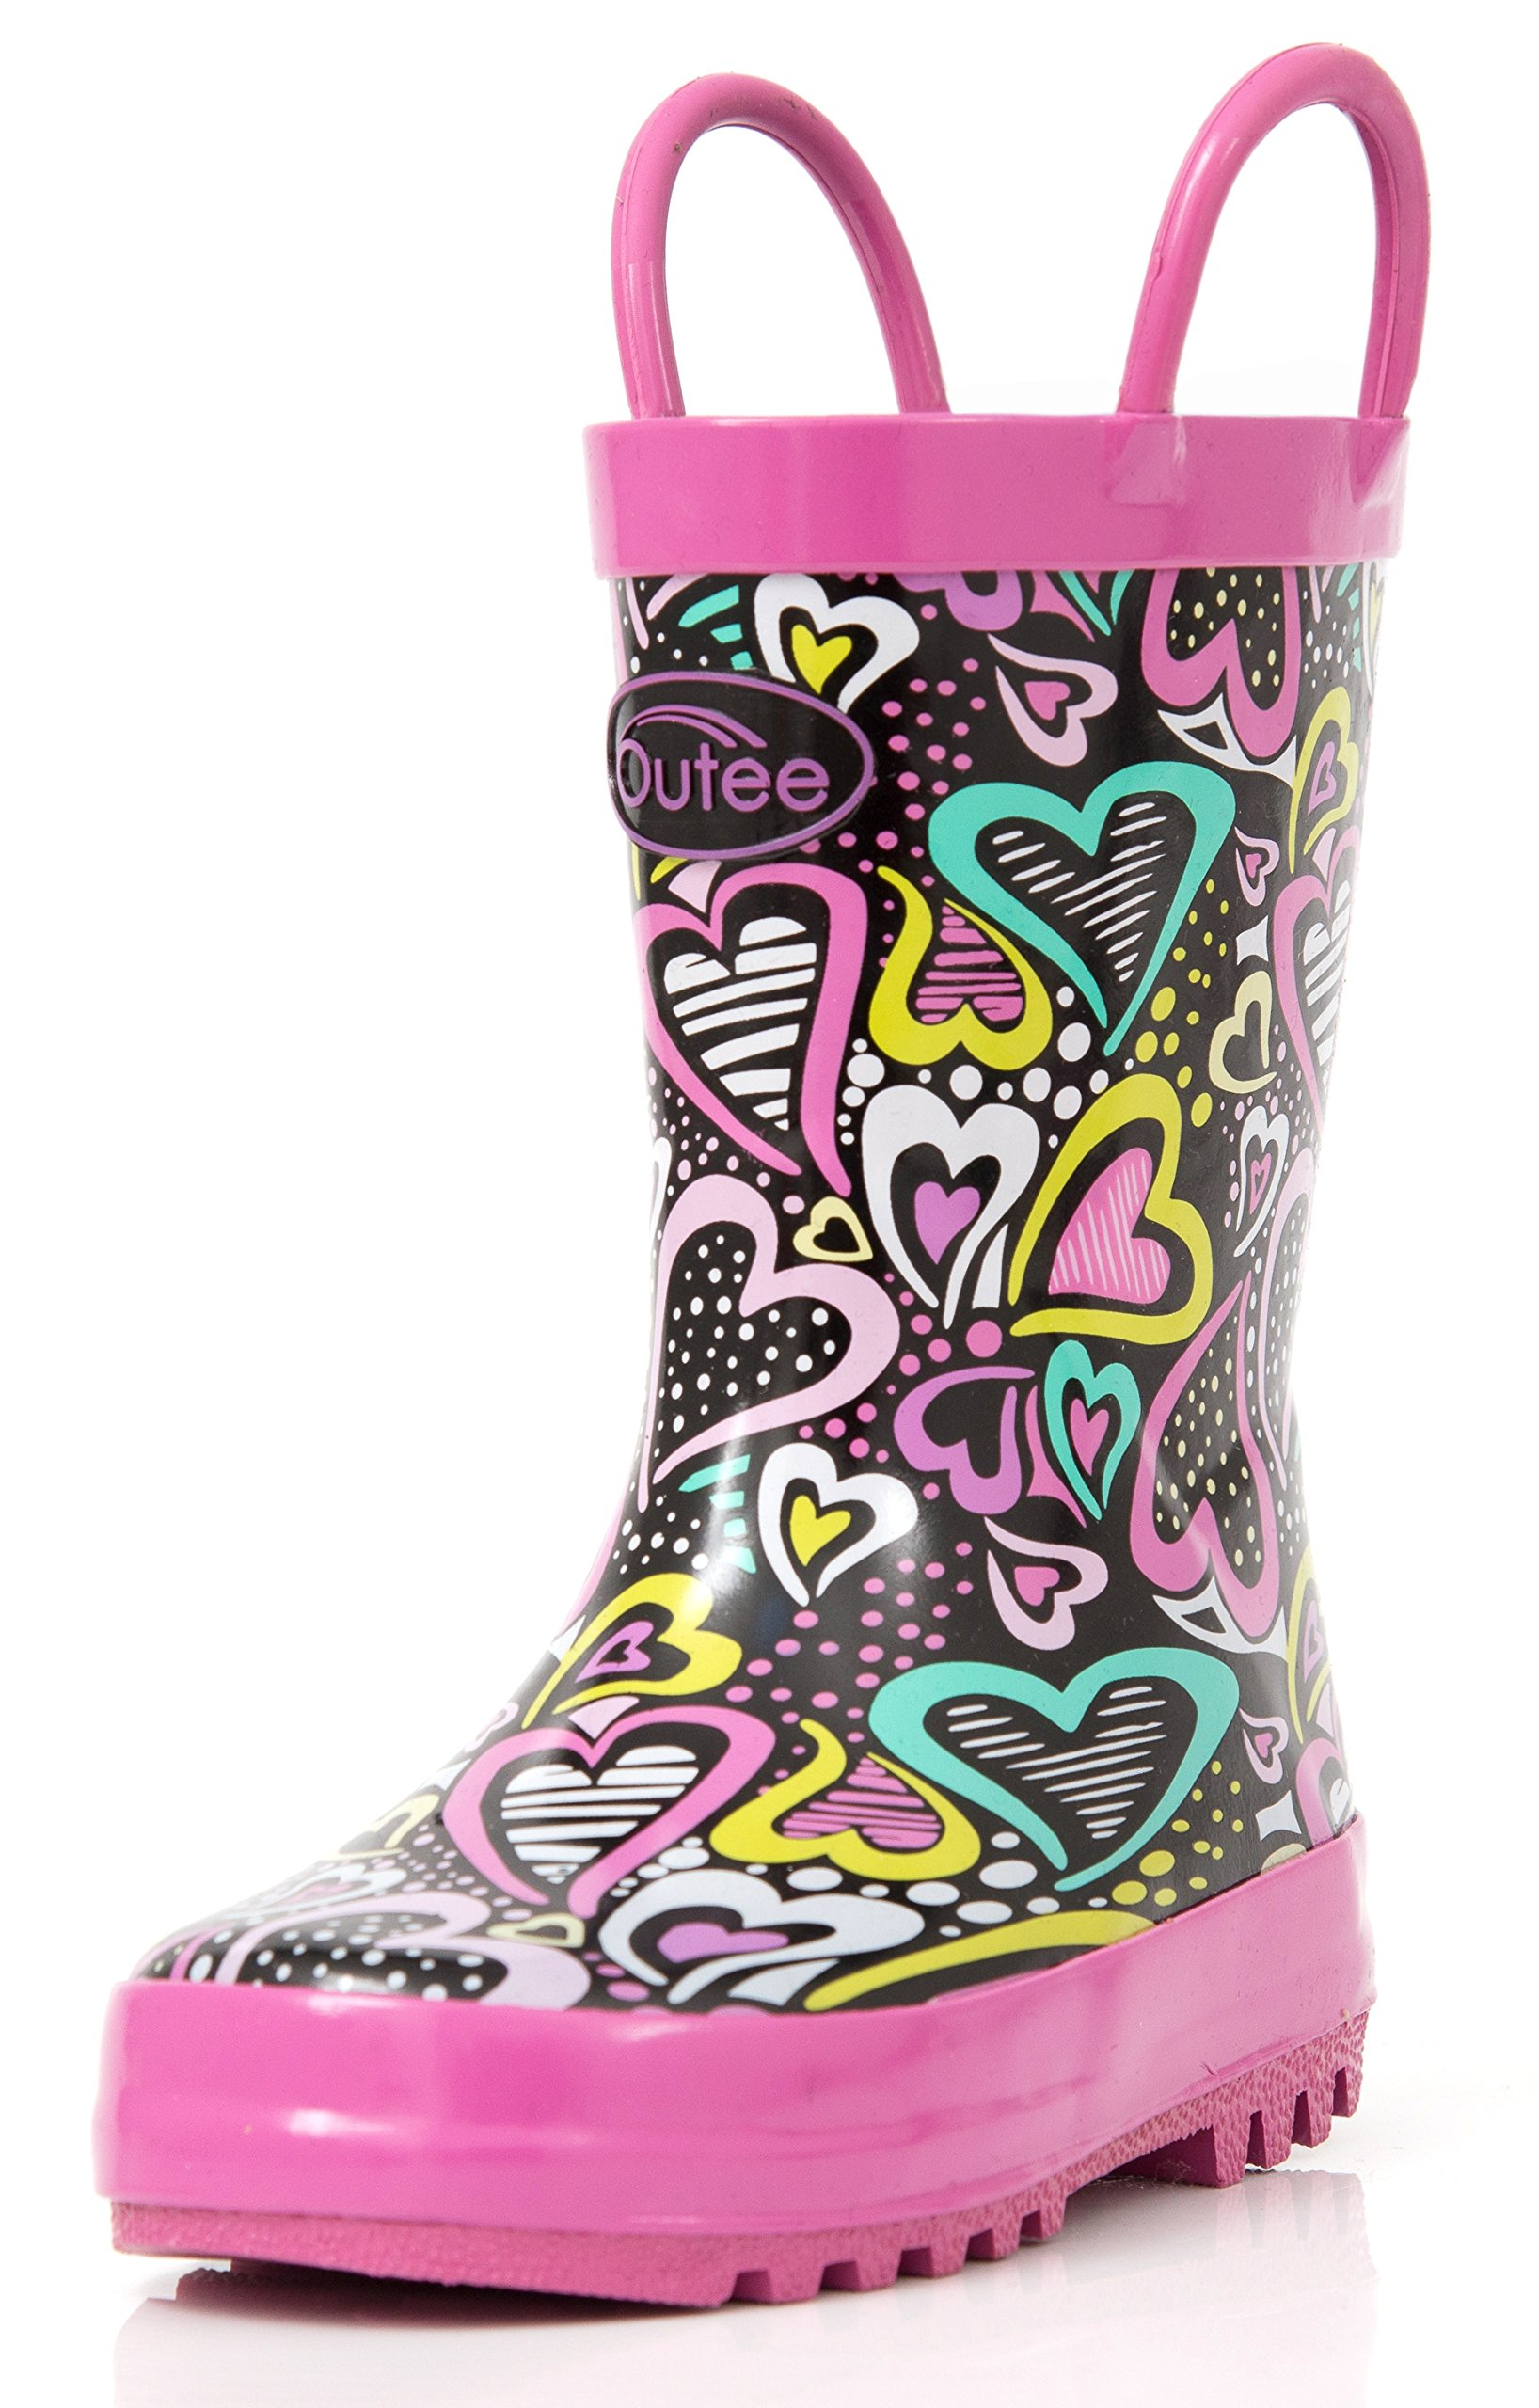 Outee Toddler Girls Kids Rain Boots Rubber Waterproof Shoes Printed Colorful Heart Cute Print with Easy-On Handles (Size 9,Purple)